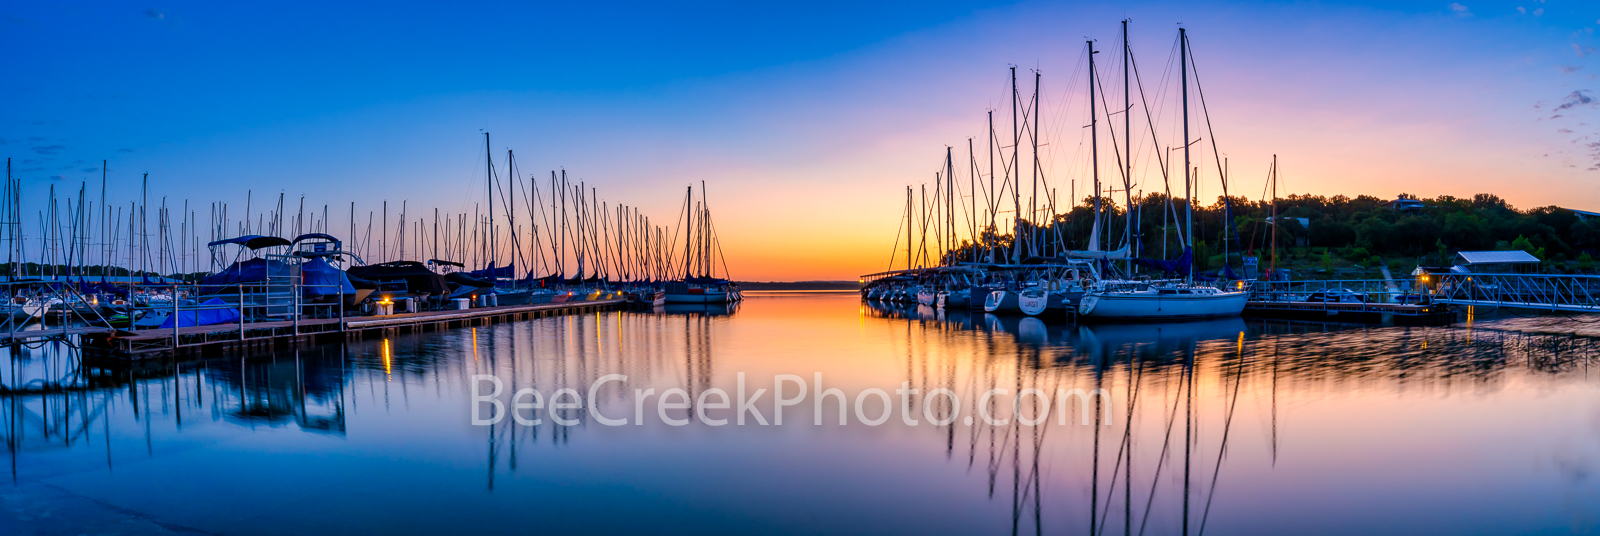 First Light - Lake Travis Marina Pano - We capture the sunrise first light over this marina on Lake Travis outside of Austin...